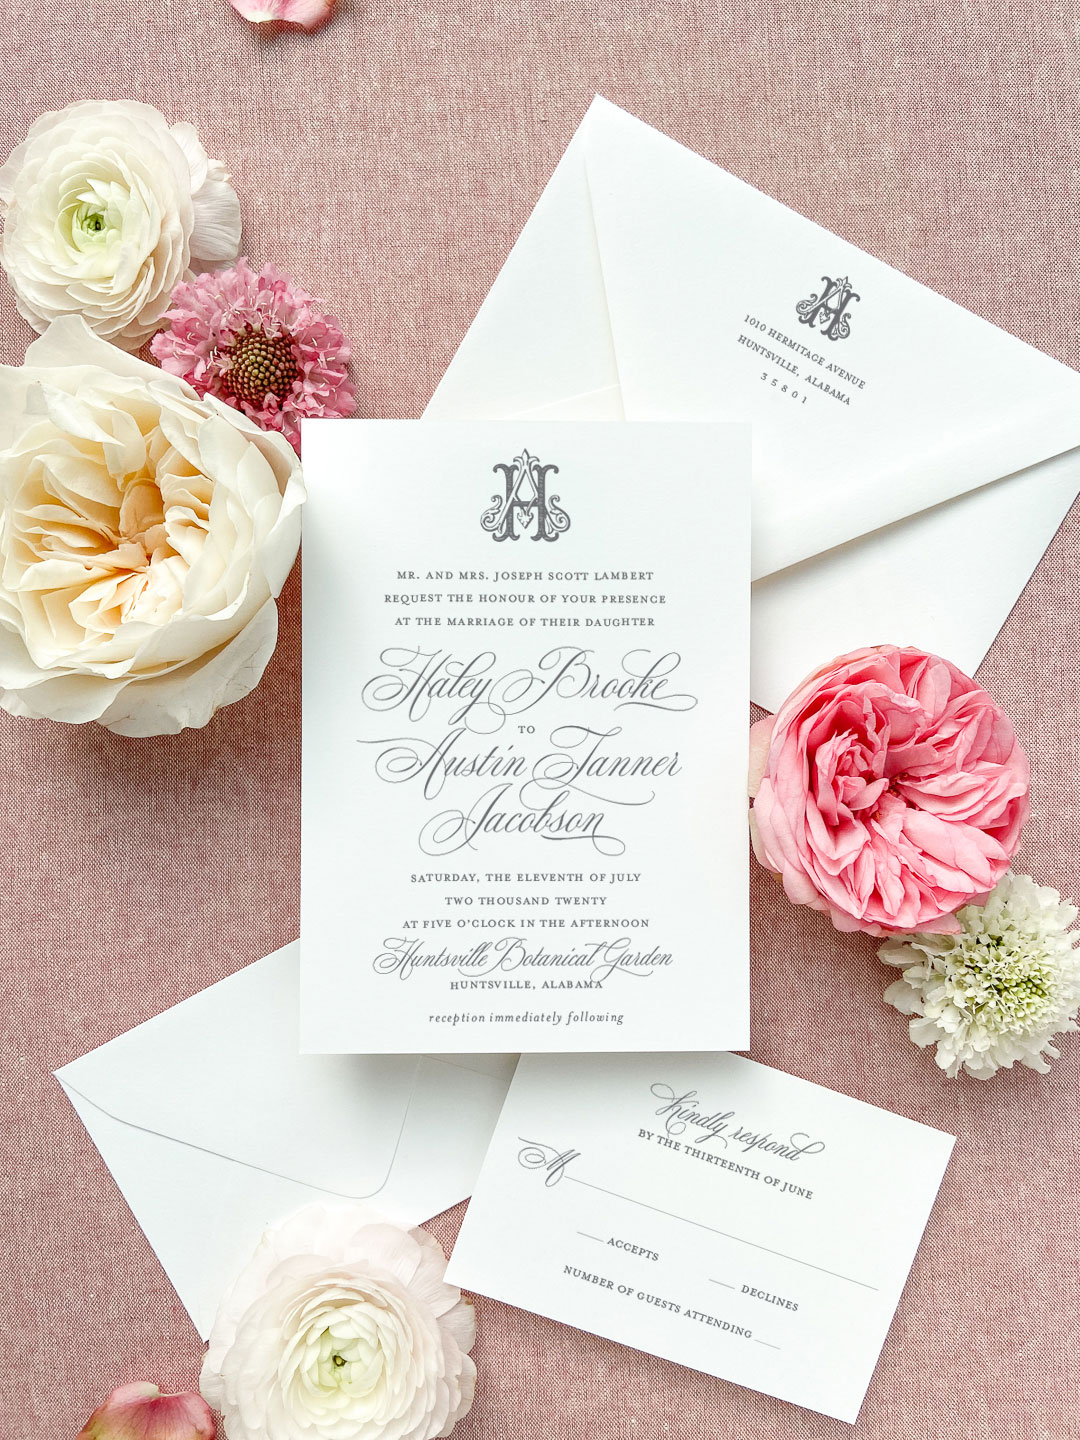 Hand drawn vintage wedding monogram from the wedding collection. Traditional script wedding invitation. The wedding collection is made up of a traditional layout and artful elements to tailor your wedding invitation to your style. Available in digital printing, letterpress, and foil stamping. Semi-custom wedding invitations by Little Fox Paperie.